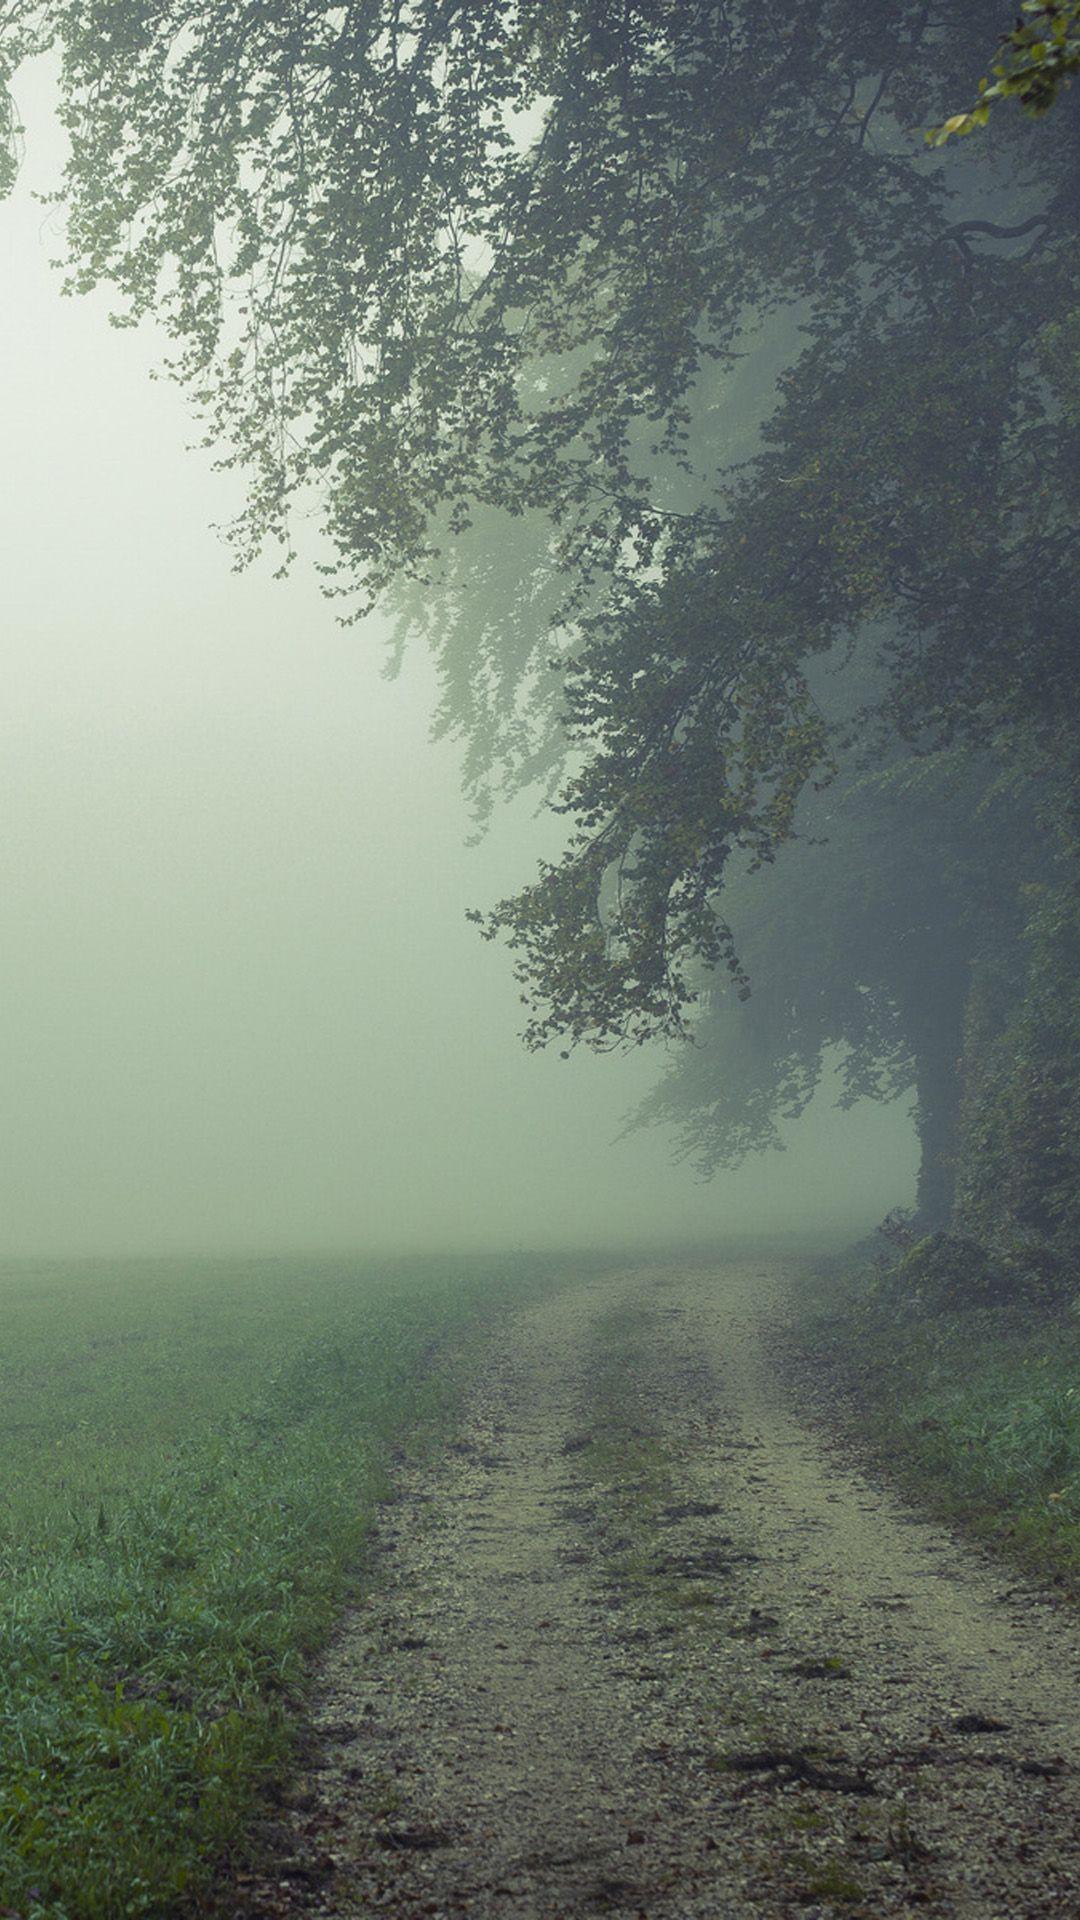 Country Misty Roads IPhone 6 Plus Wallpaper